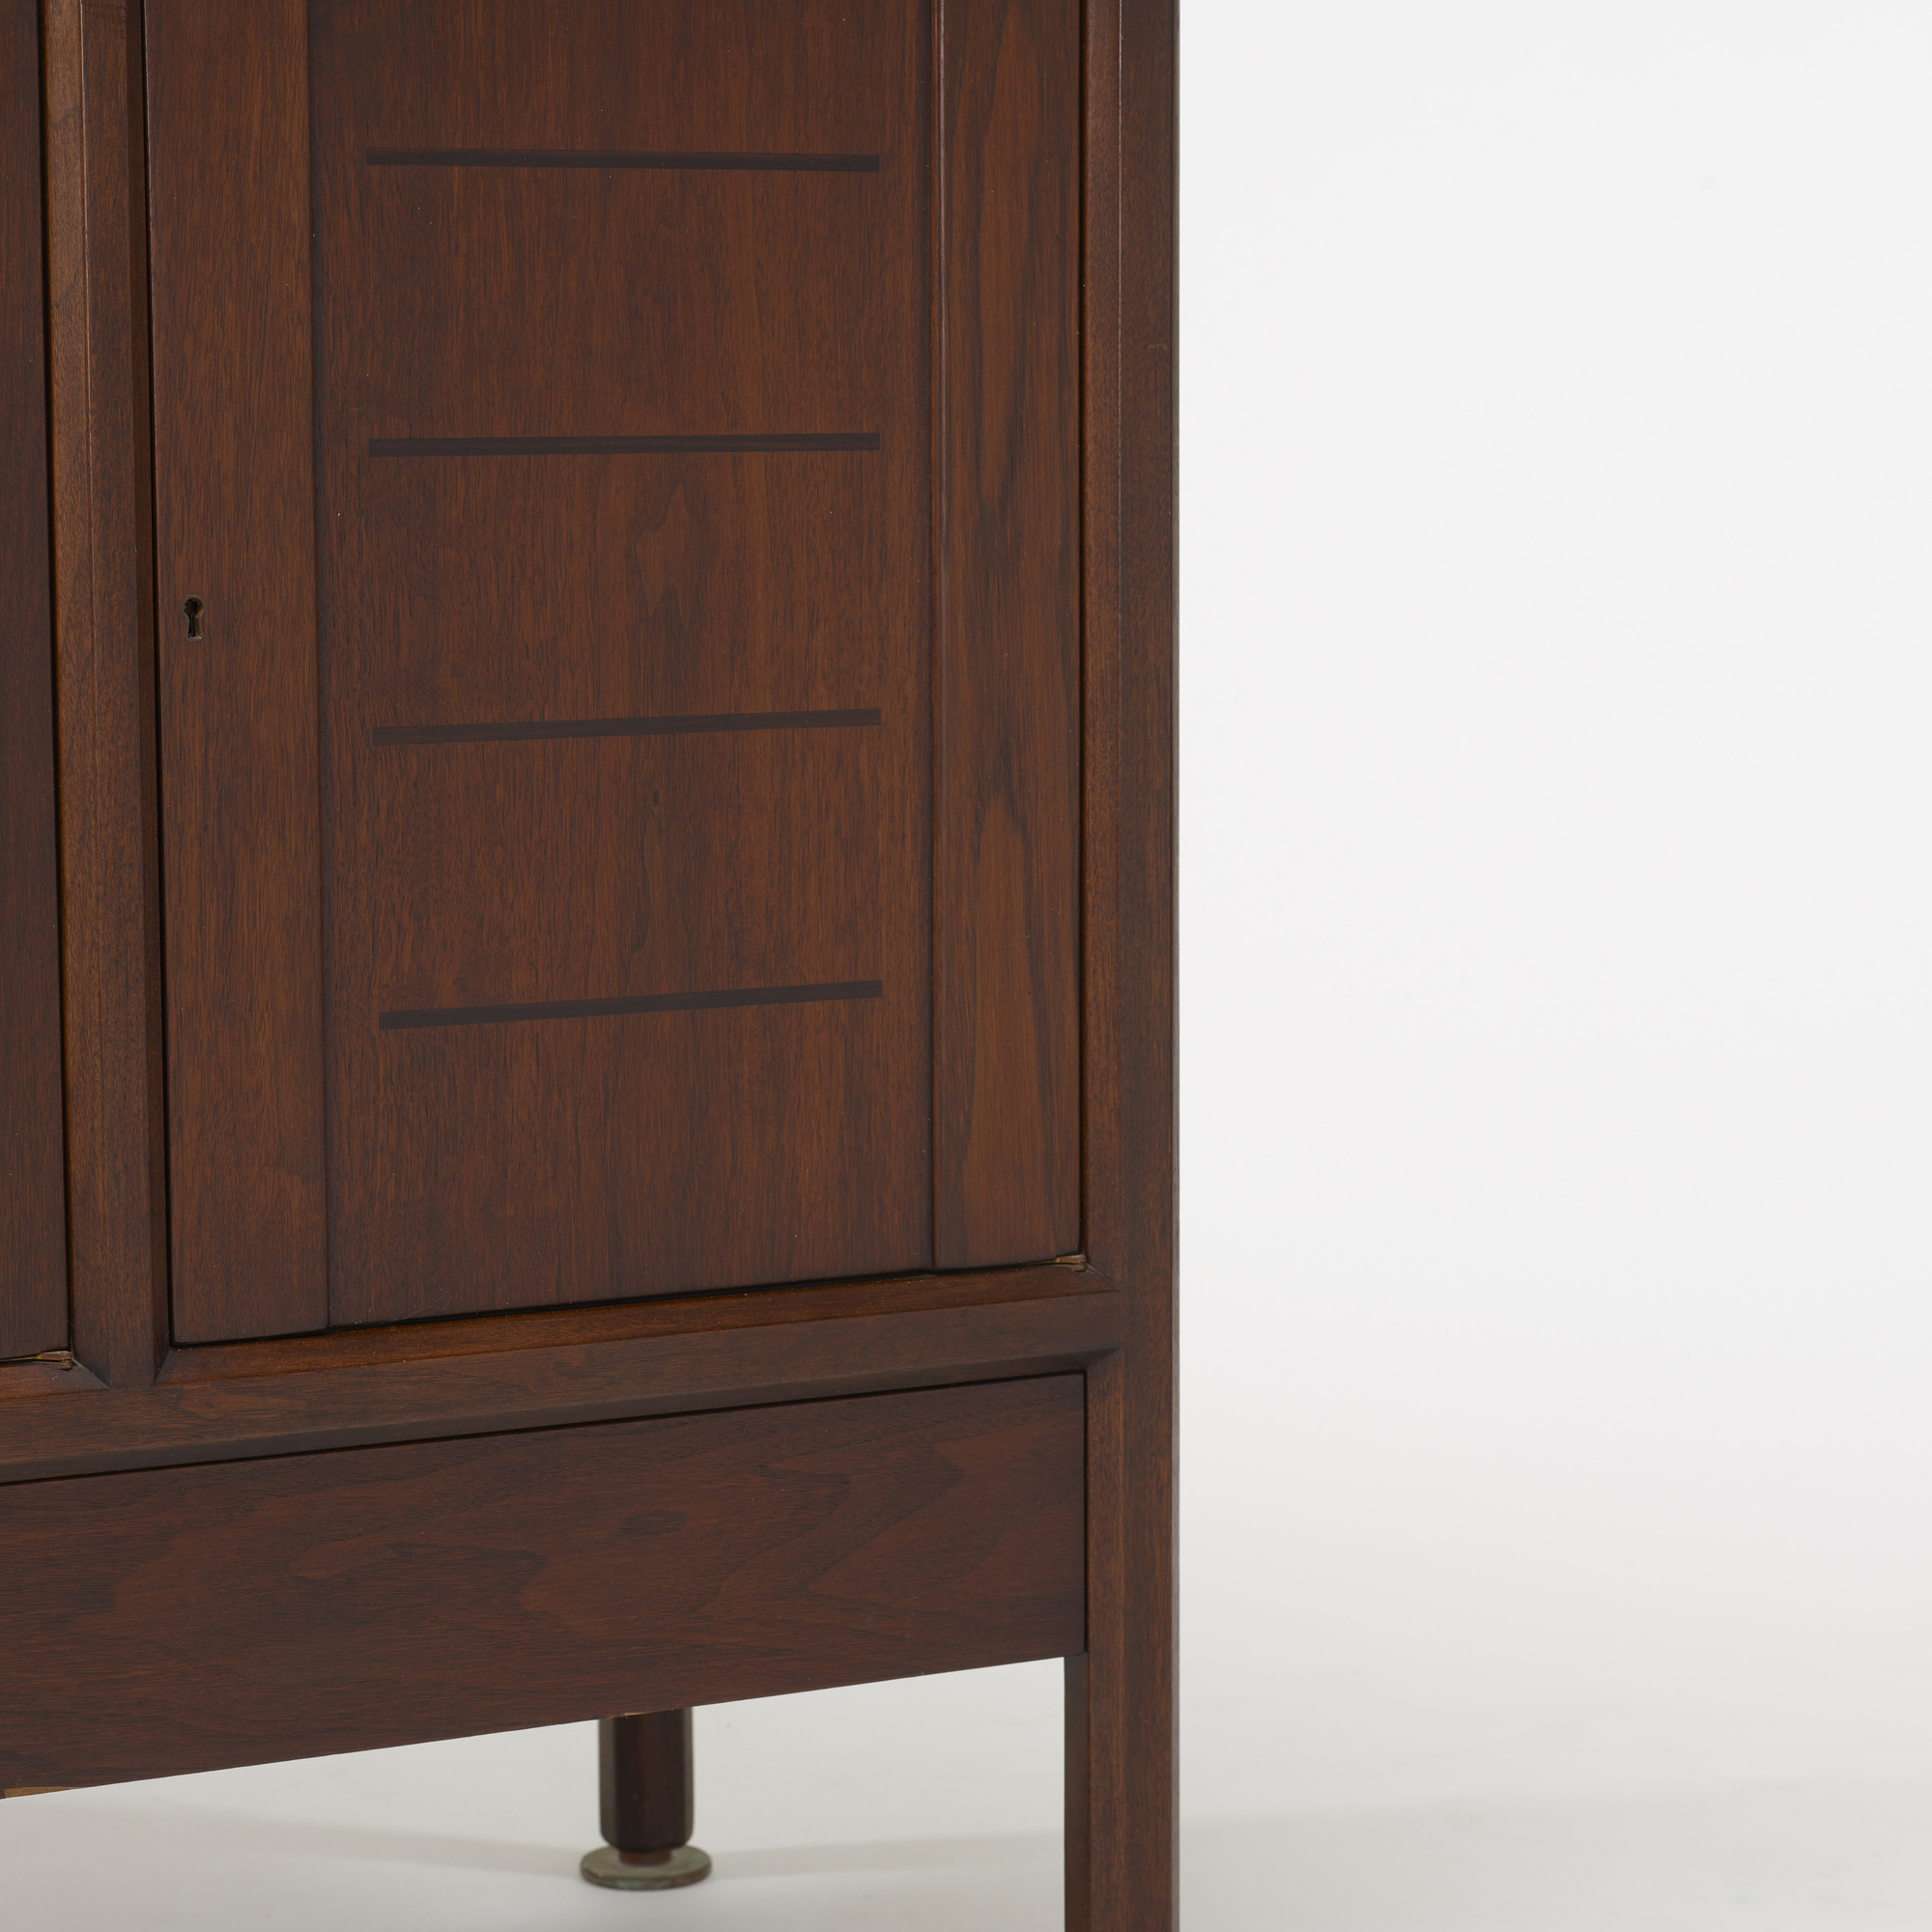 807: Edward Wormley / cabinet, model 5723-B (3 of 3)